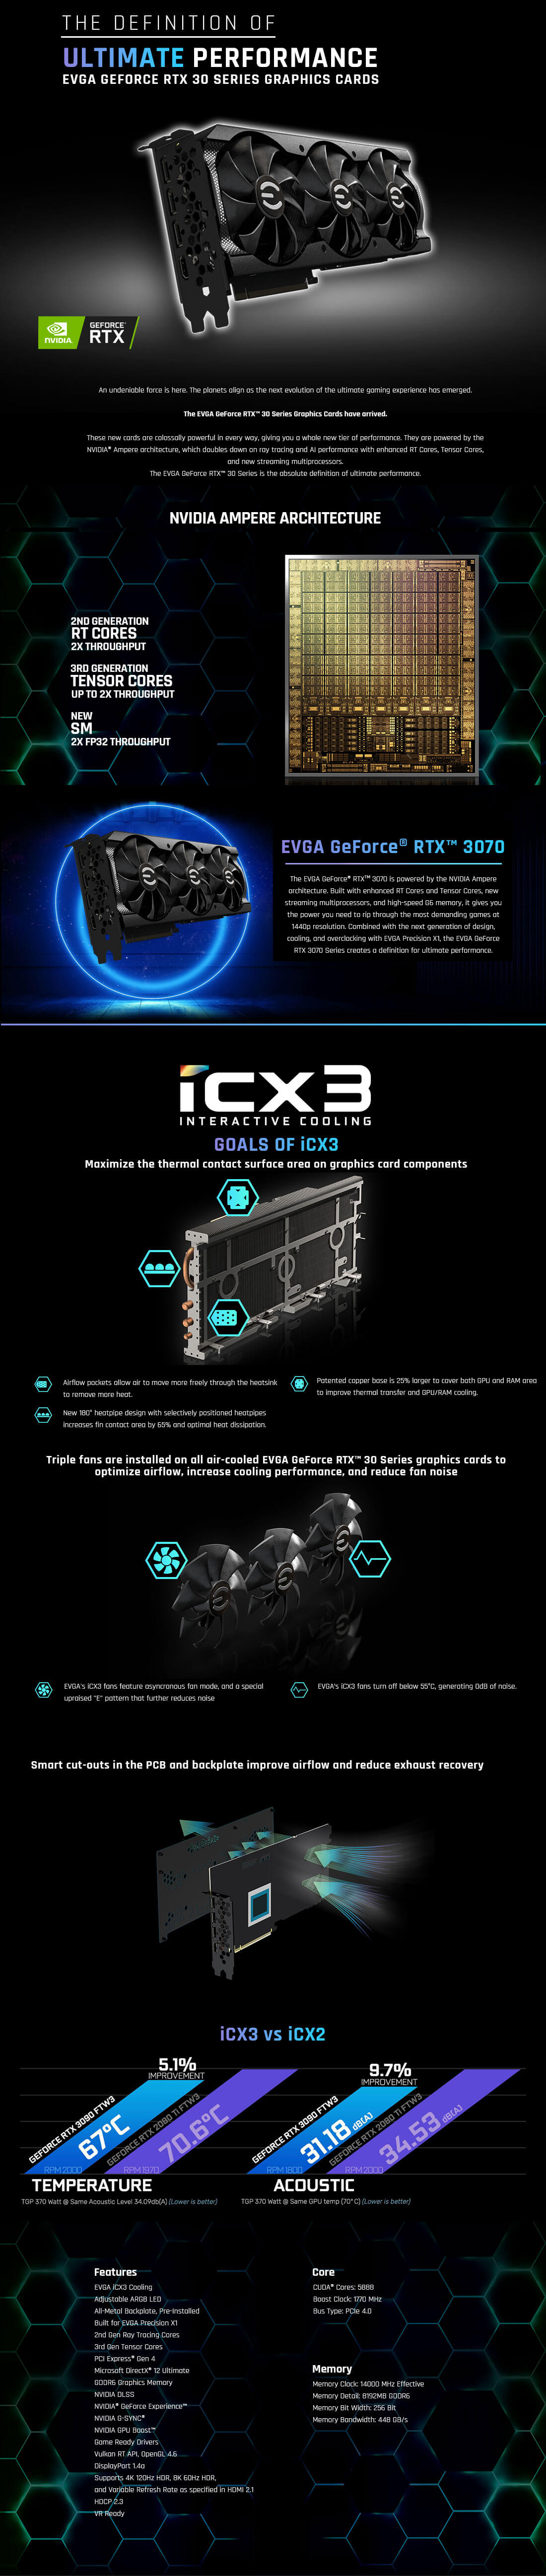 EVGA Nvidia GeForce RTX 3070